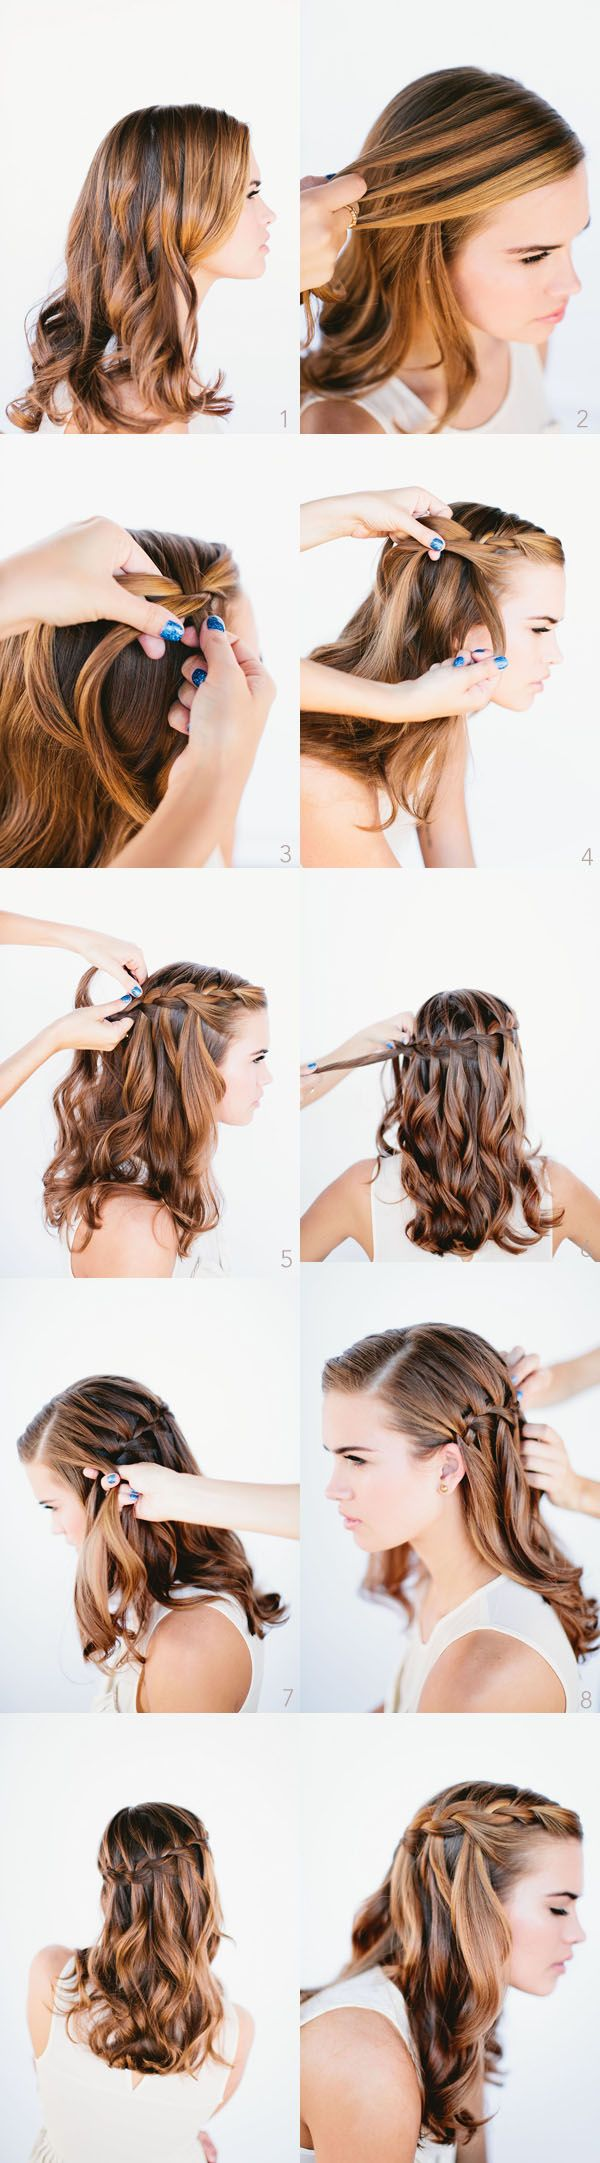 These 20 Hairdos Will Change Your Morning Routine – They Take Just 5 Minutes!